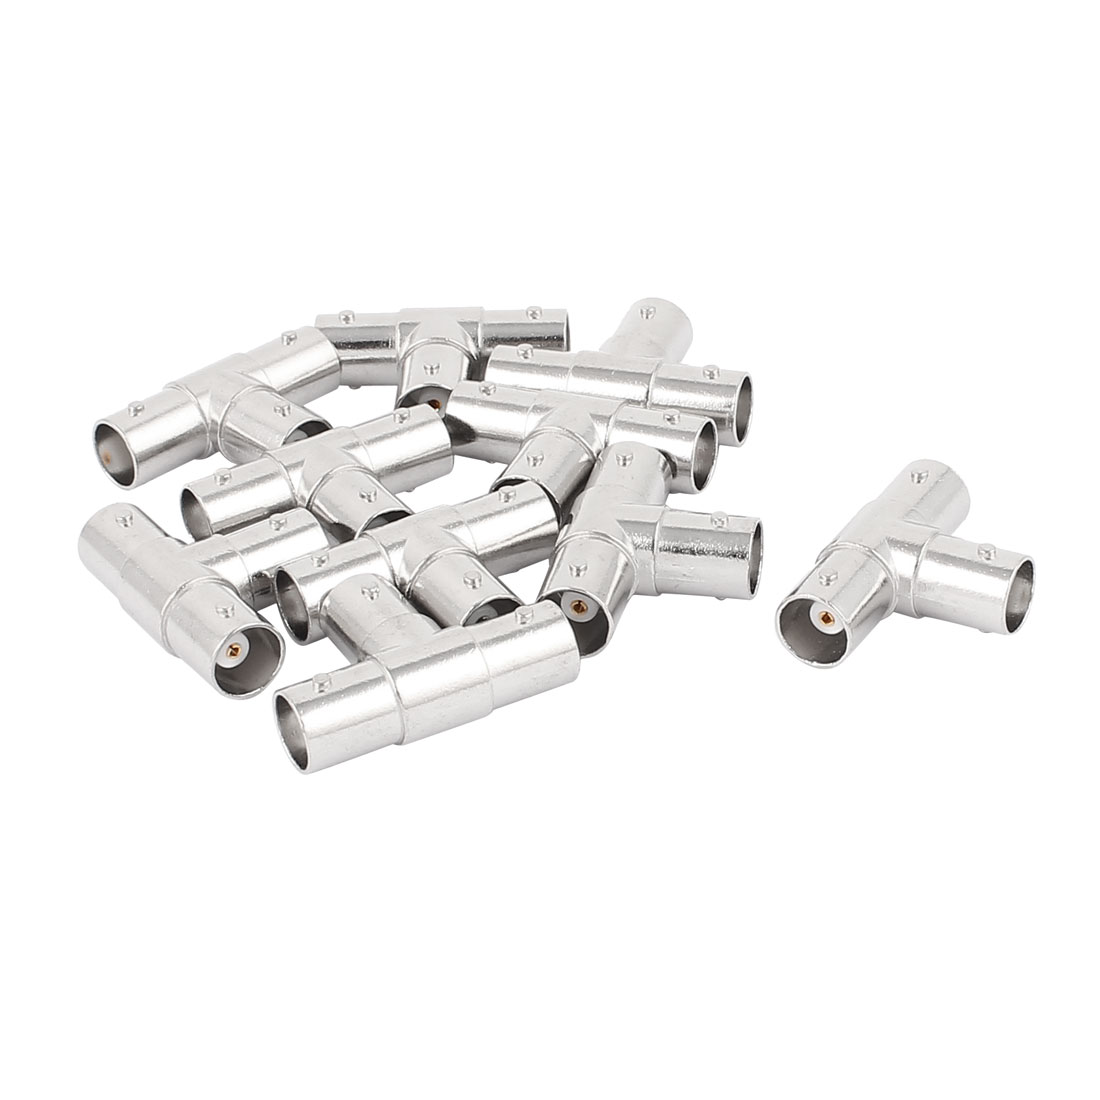 10Pcs BNC Female to Double BNC Female T Shape Adapter Connector Silver Tone